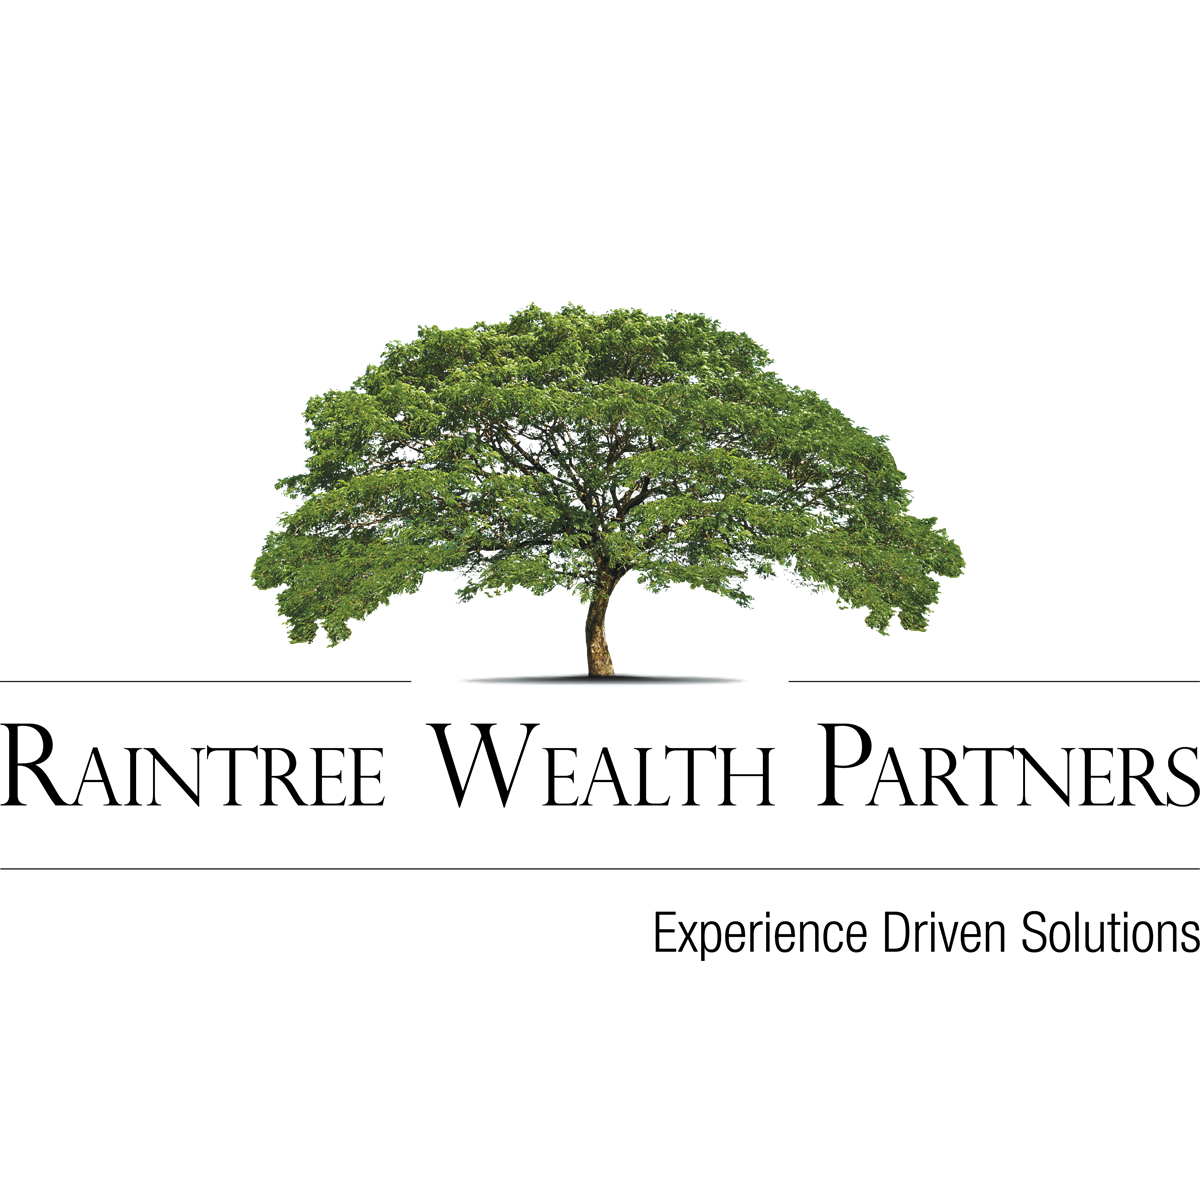 Raintree Wealth Partners